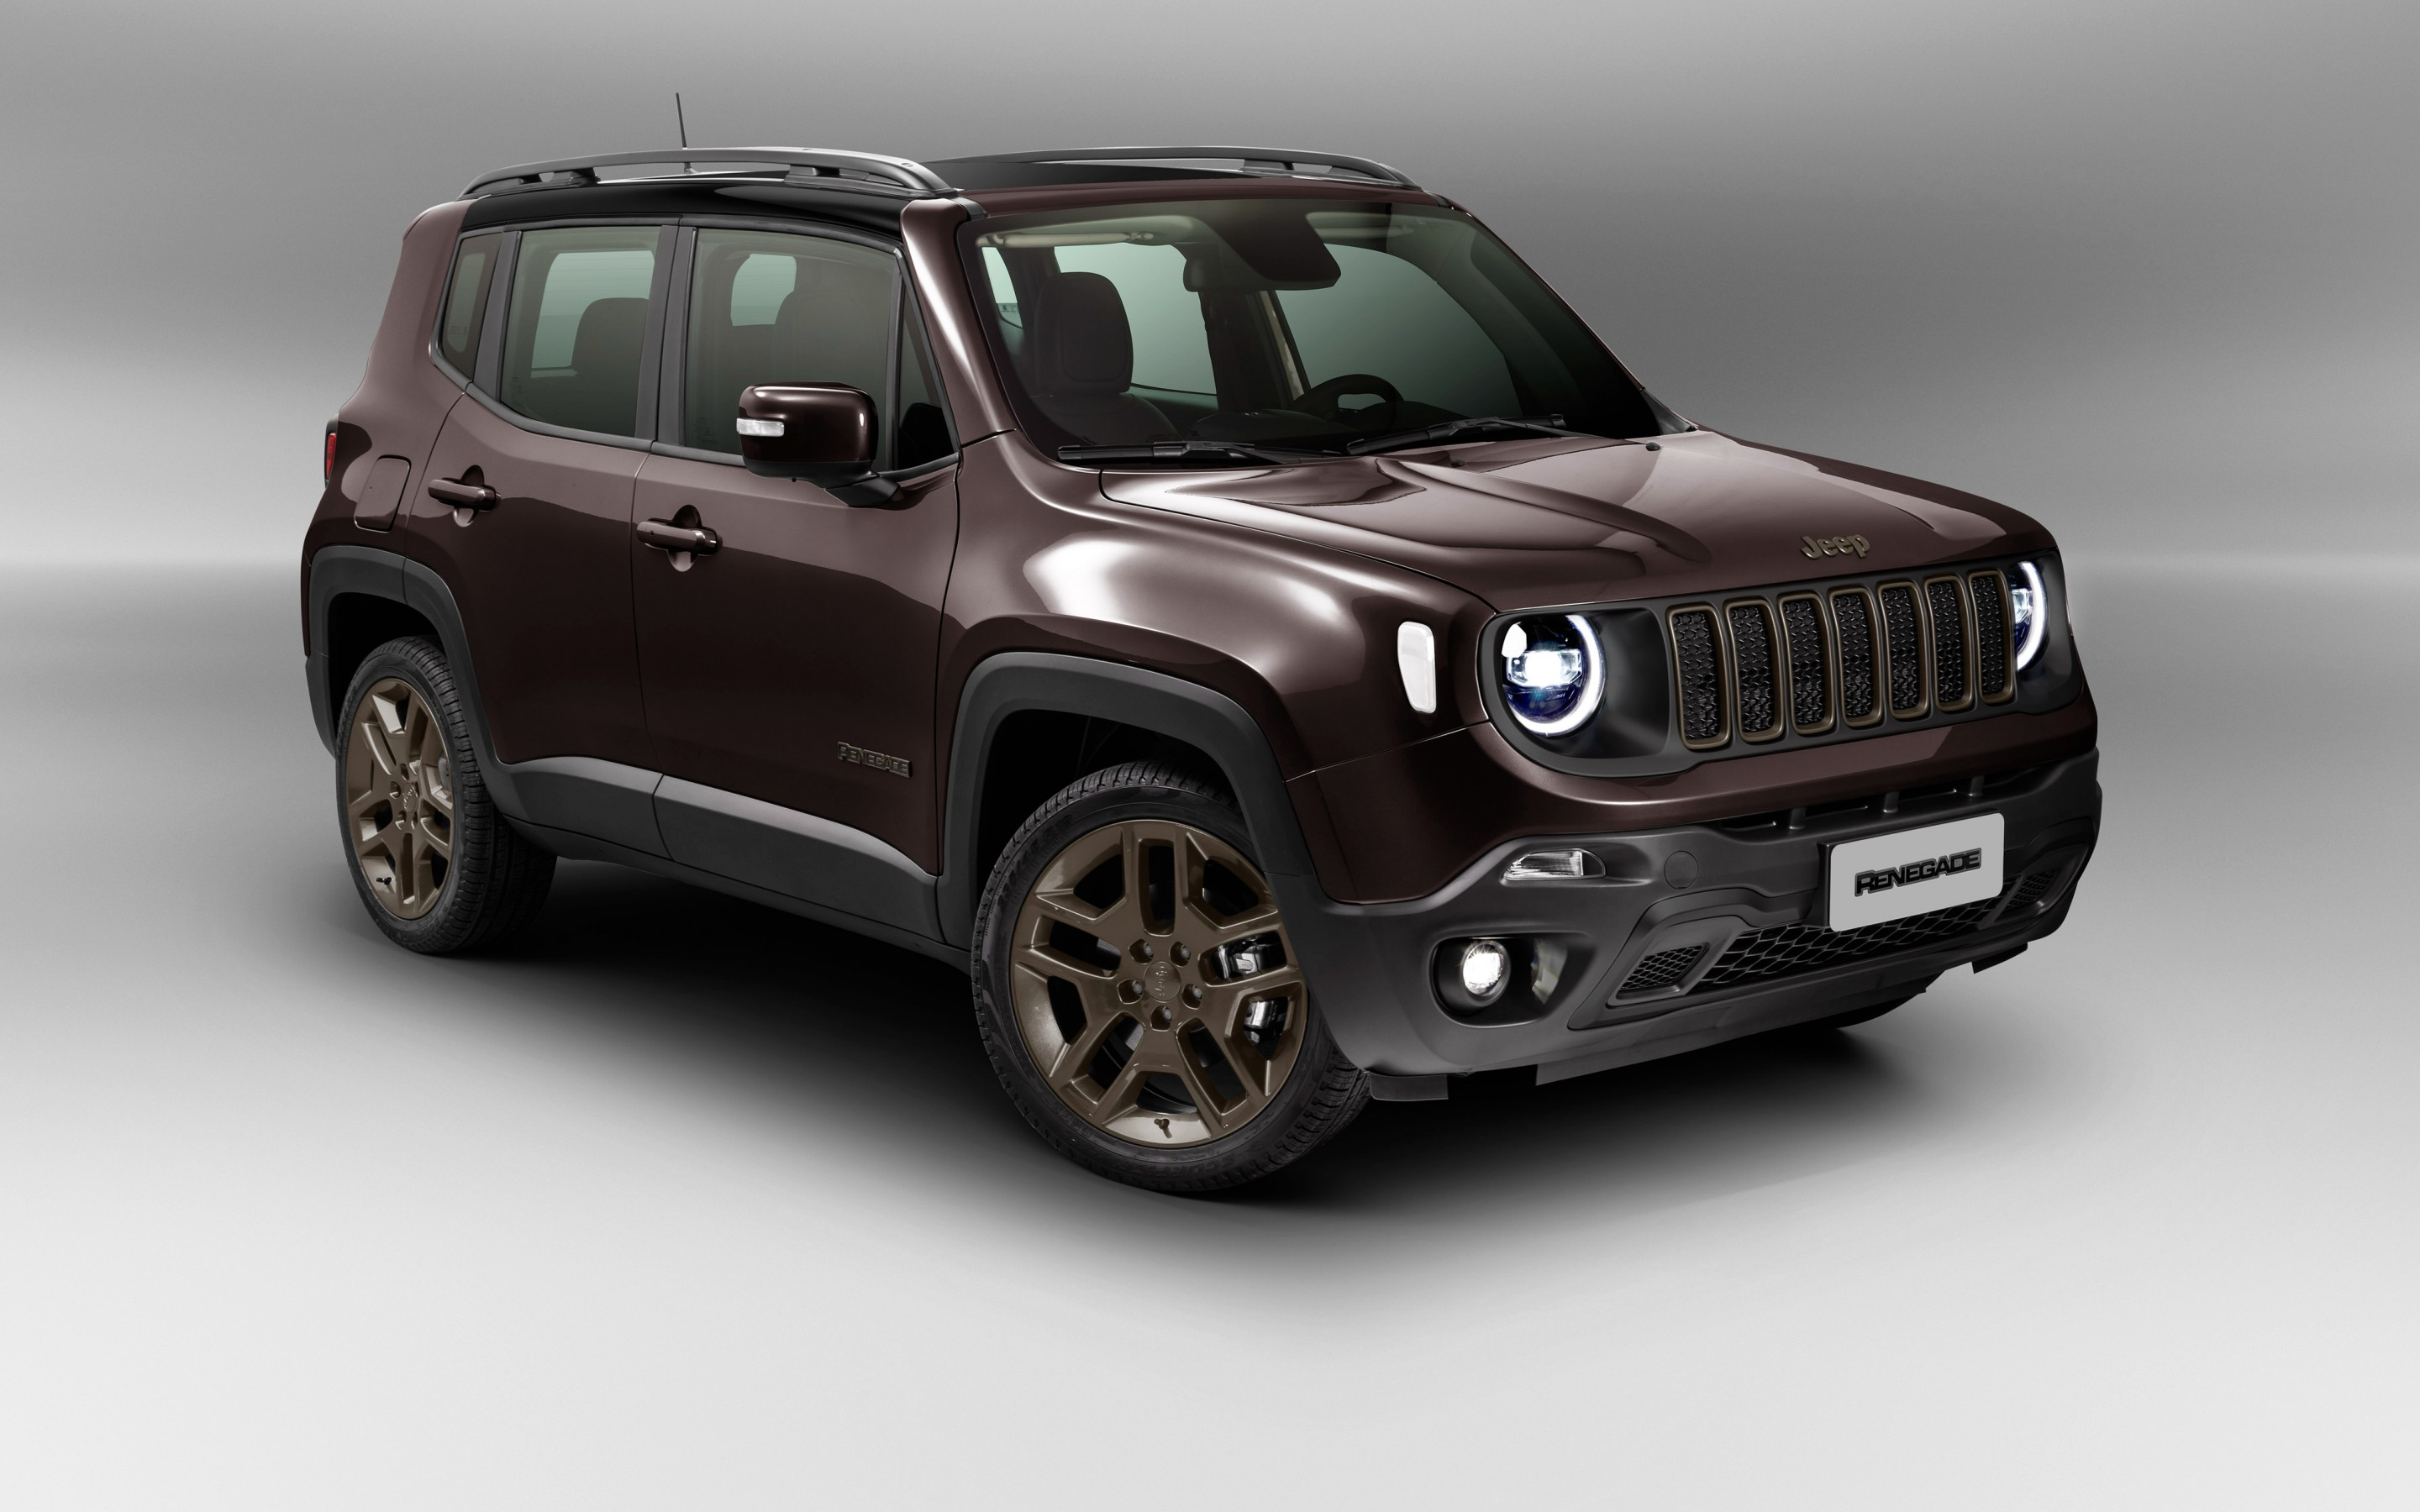 Download wallpapers Jeep Renegade Limited studio 2018 cars SUVs 2880x1800